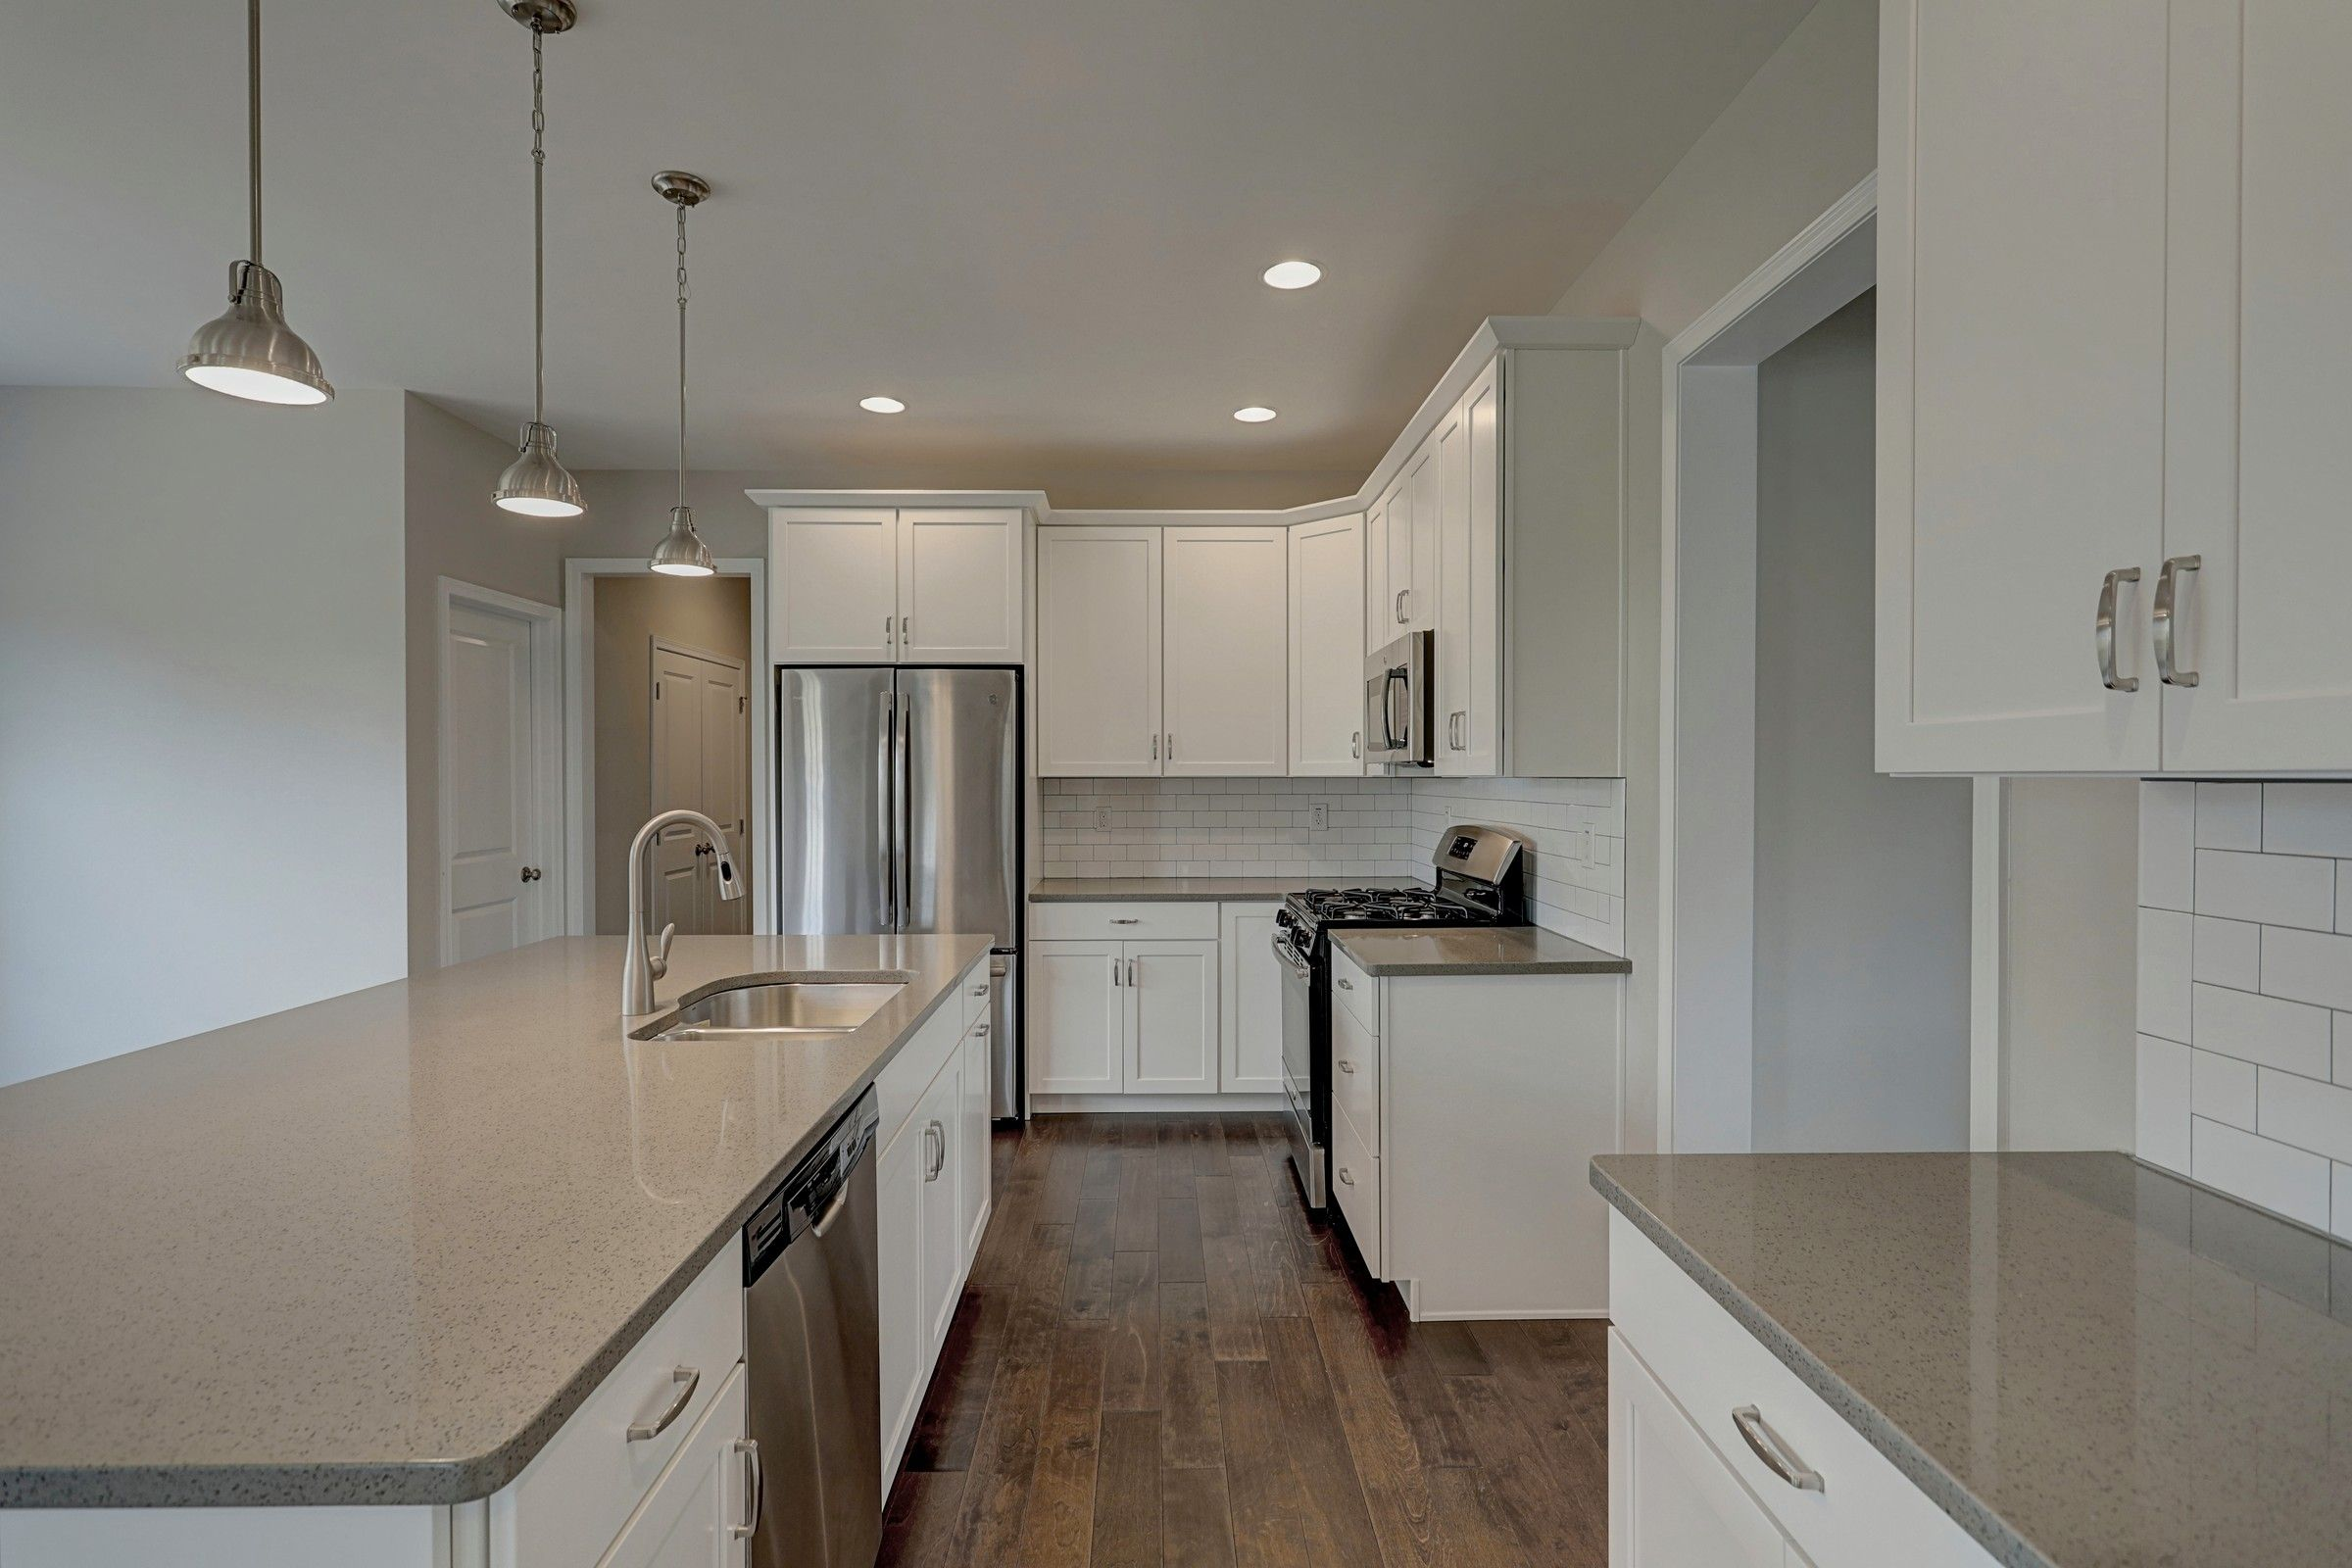 Kitchen featured in the Parker Normandy By Keystone Custom Homes in York, PA